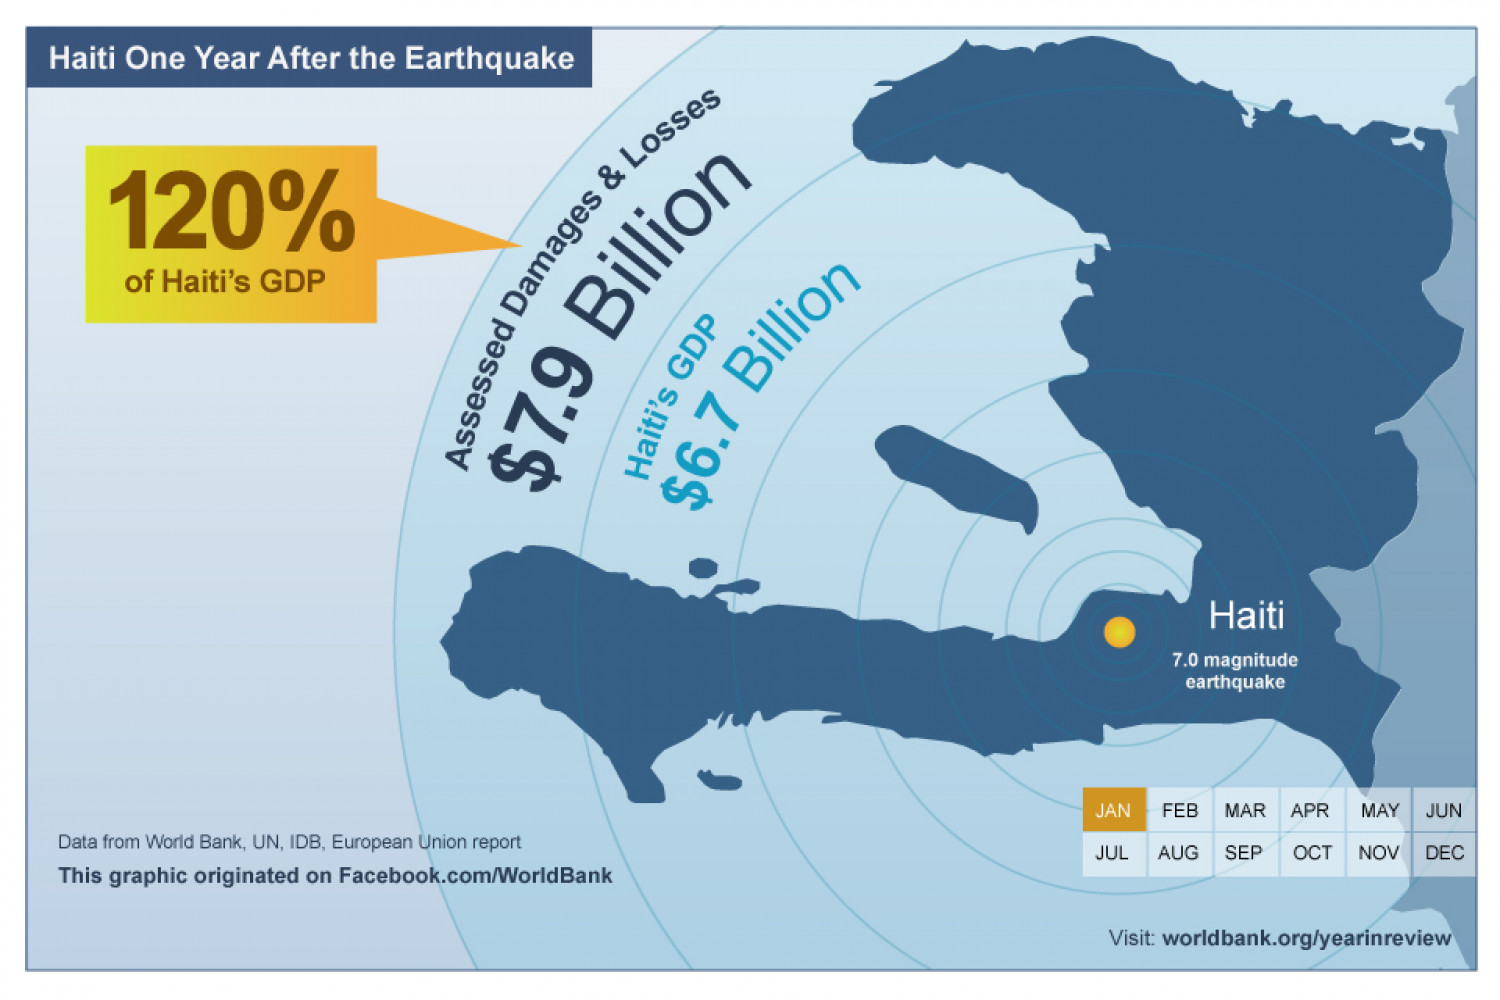 Haiti's earthquake damage assessed at 120% of their GDP Infographic